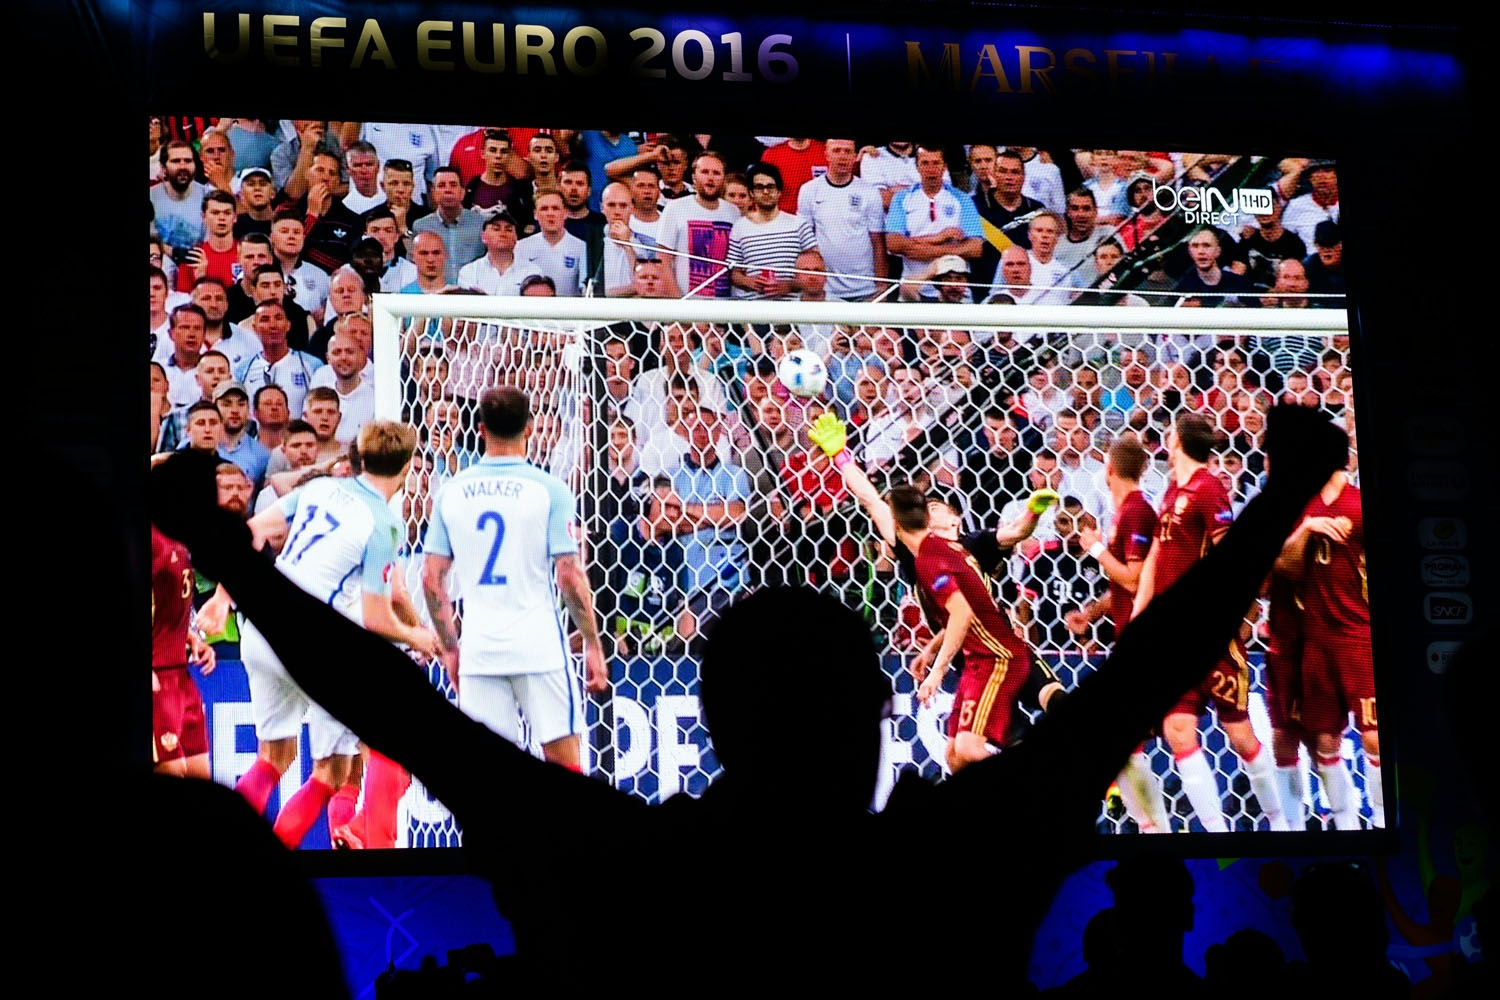 An England fan celebrates in the fanzone in Marseille after England's midfielder Eric Dier scored during the Euro 2016 group B football match between England and Russia, on June 11, 2016